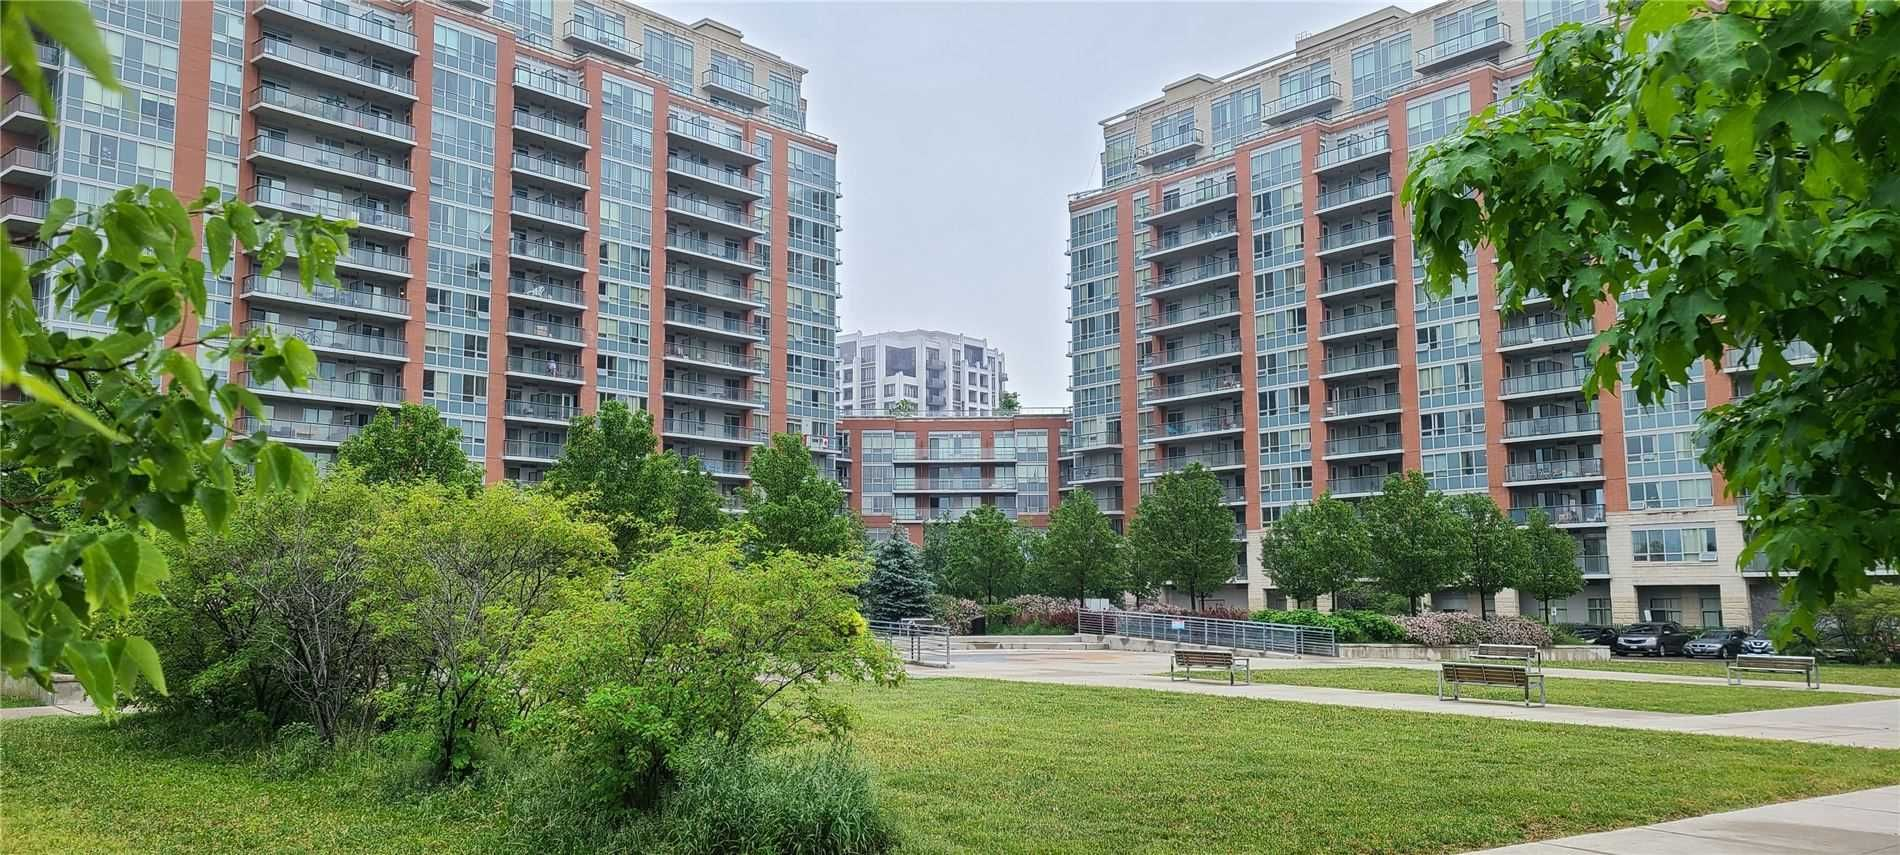 50 Clegg Rd, unit 115 for sale in Toronto - image #2